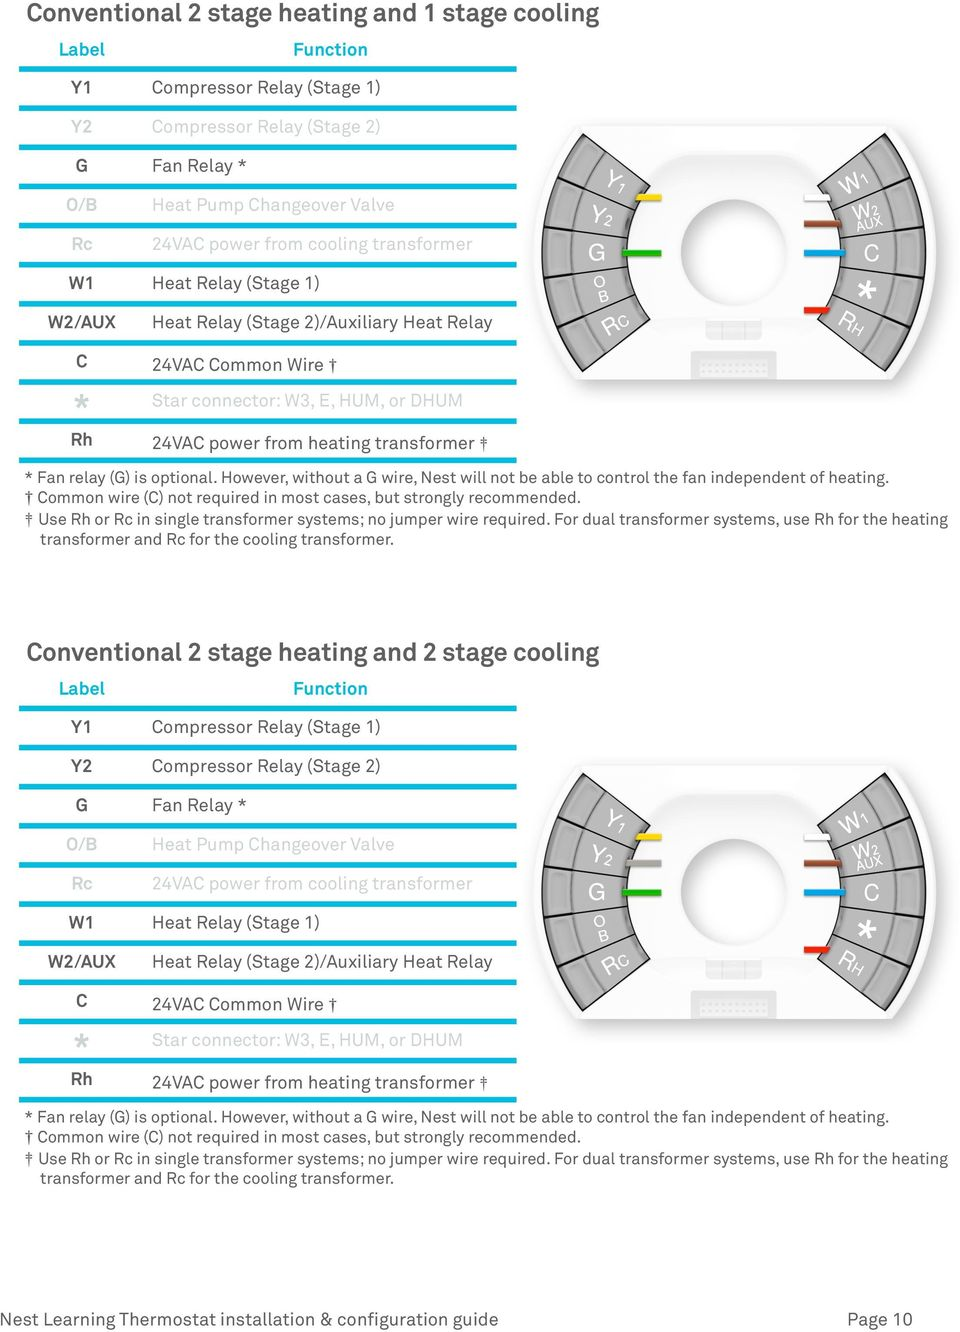 nest learning thermostat pro installation \u0026 configuration guide pdf Heart Sounds S1 and S2 however, without a g wire, nest will not be able to